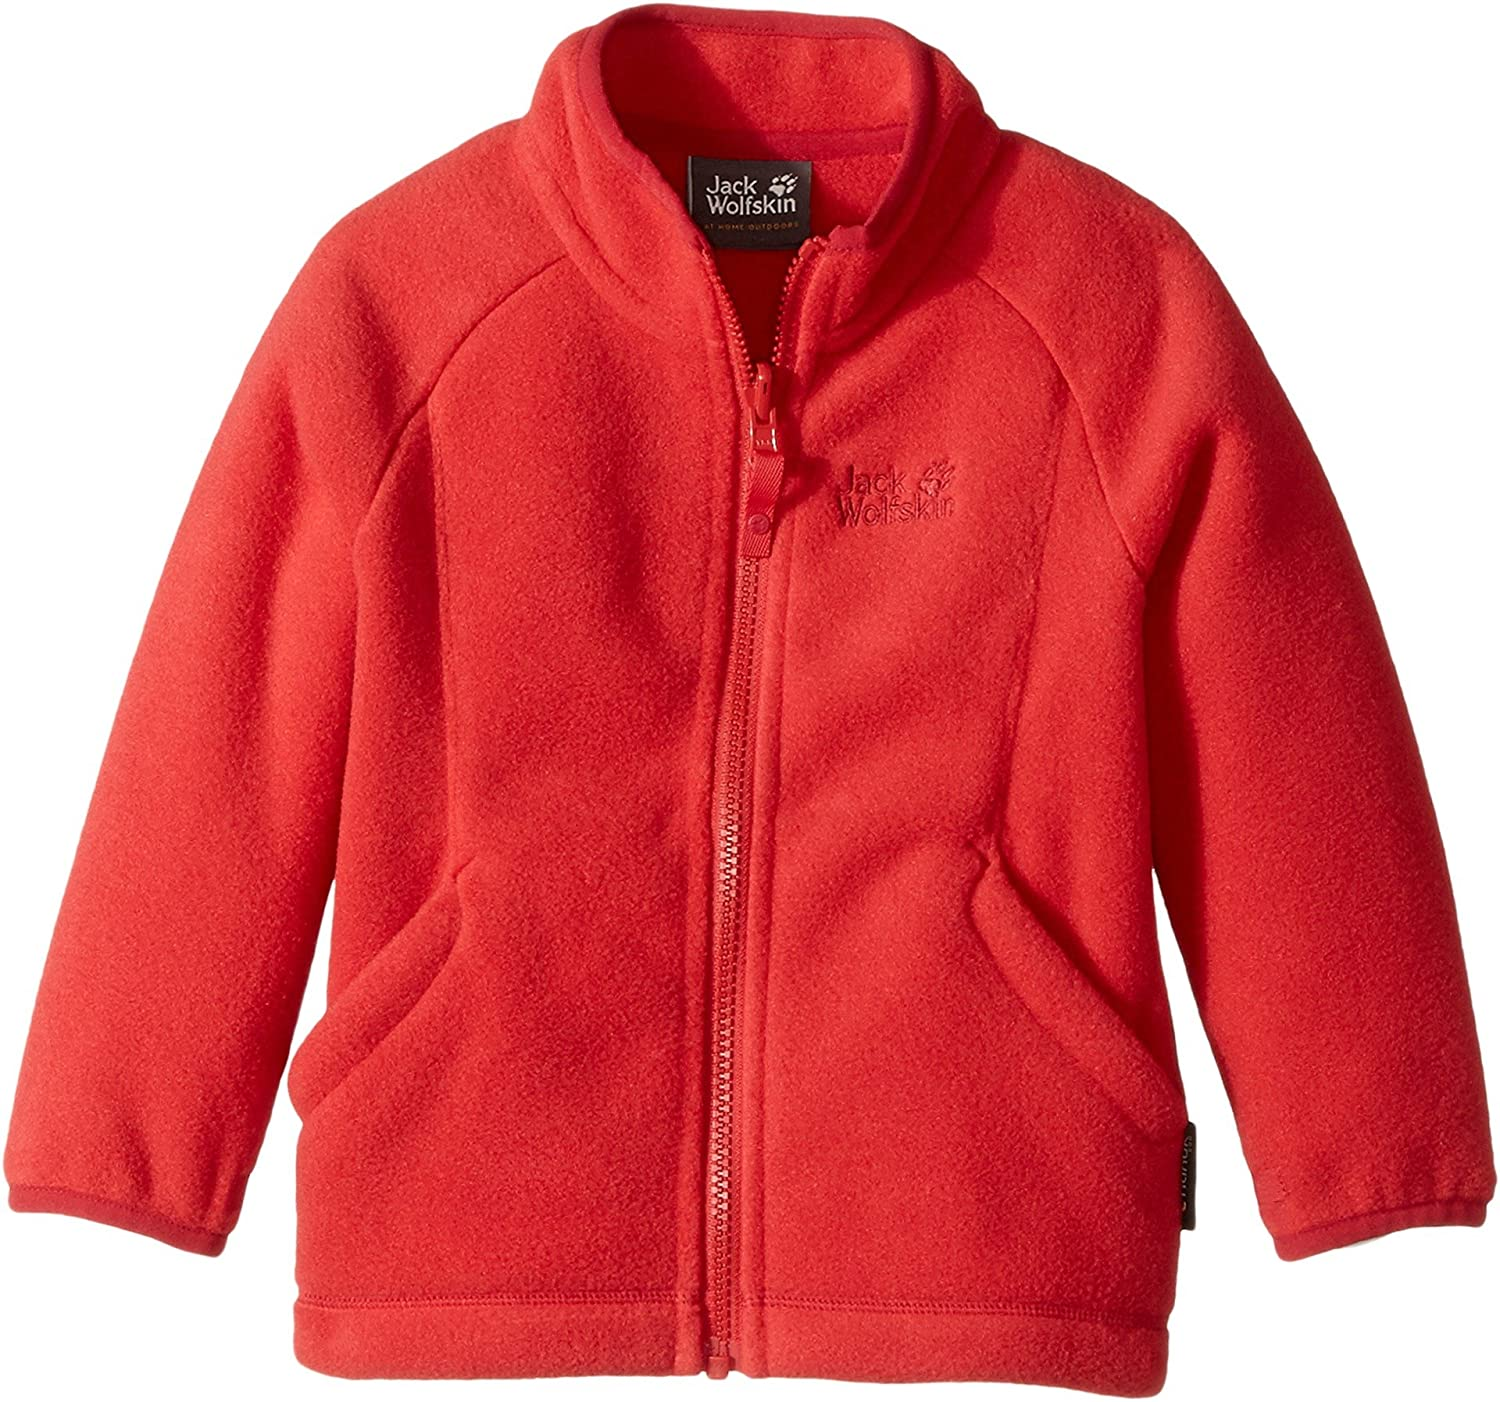 Jack Wolfskin Kids Mens Thunder Bay Fleece (Infant/Toddler/Little Kids/Big Kids)